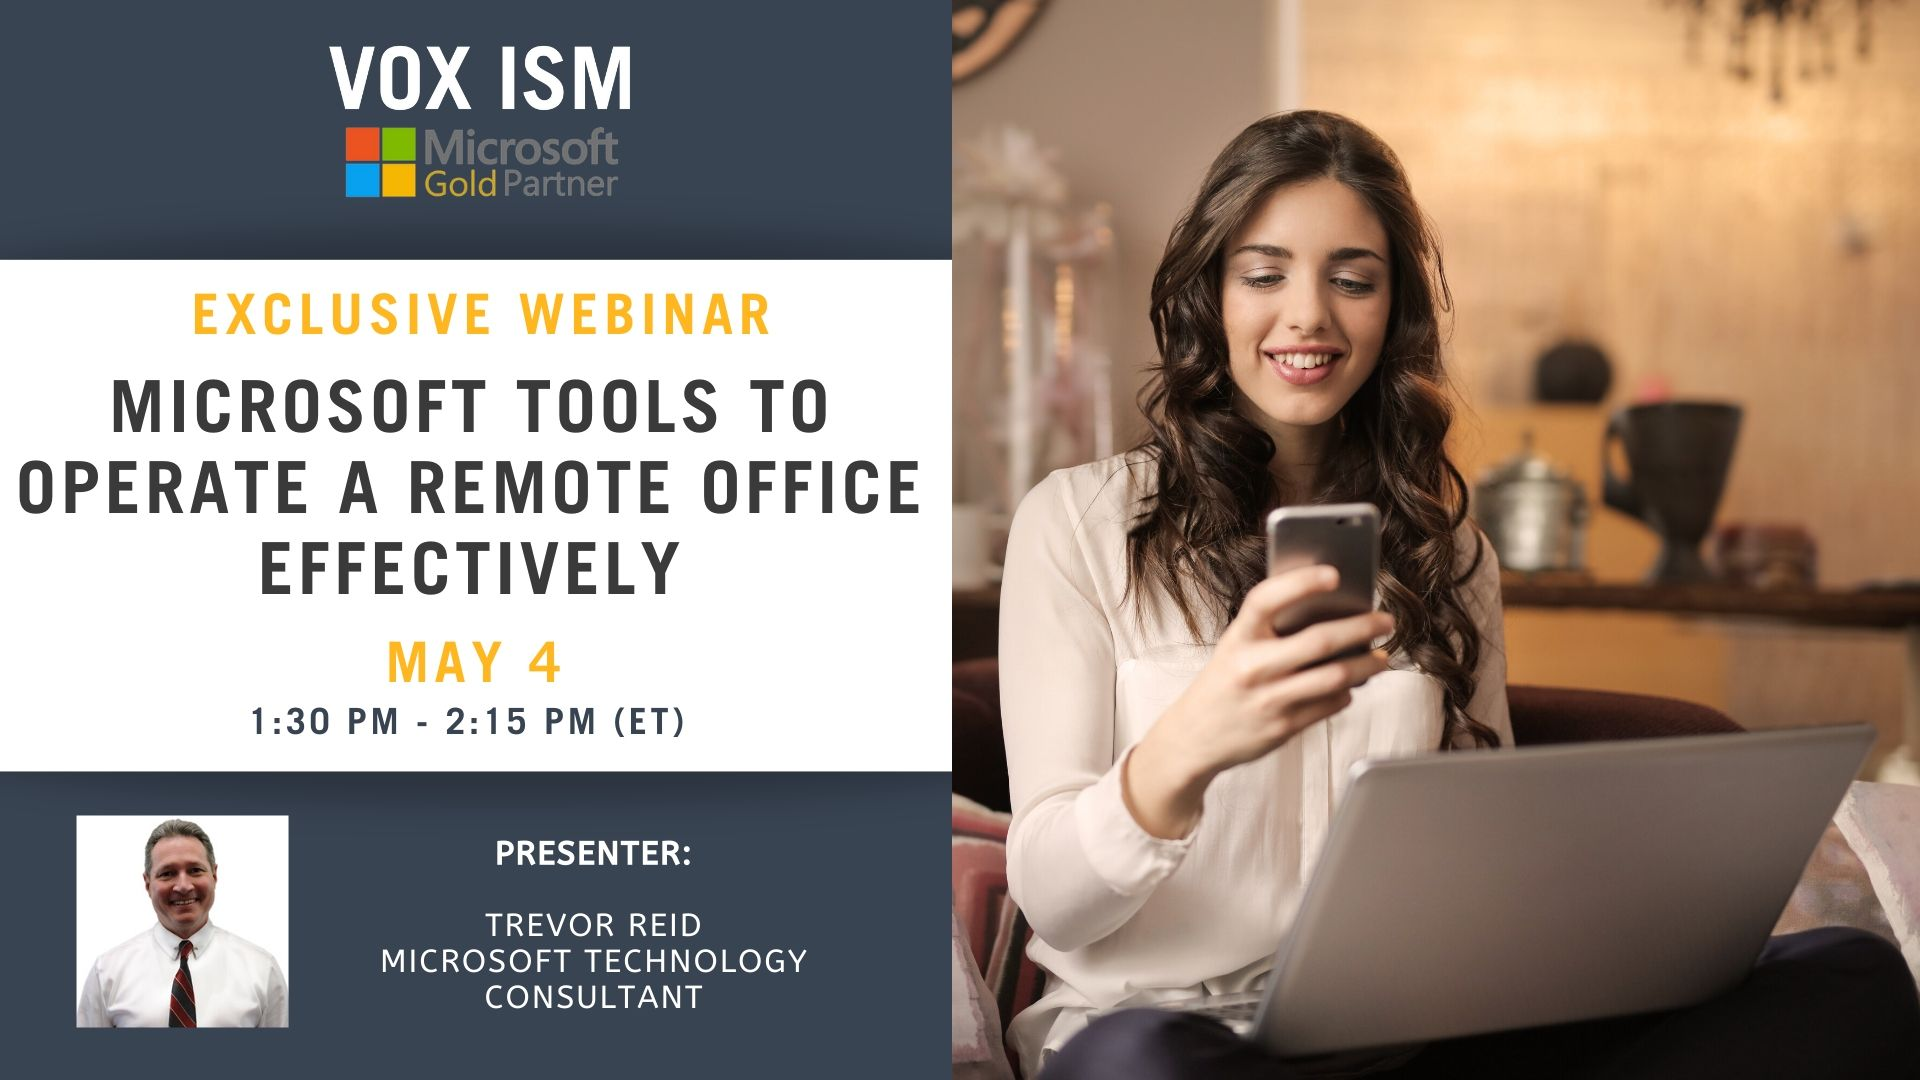 Microsoft Tools to Operate a Remote Office Effectively - May 4 - Webinar_VOX ISM